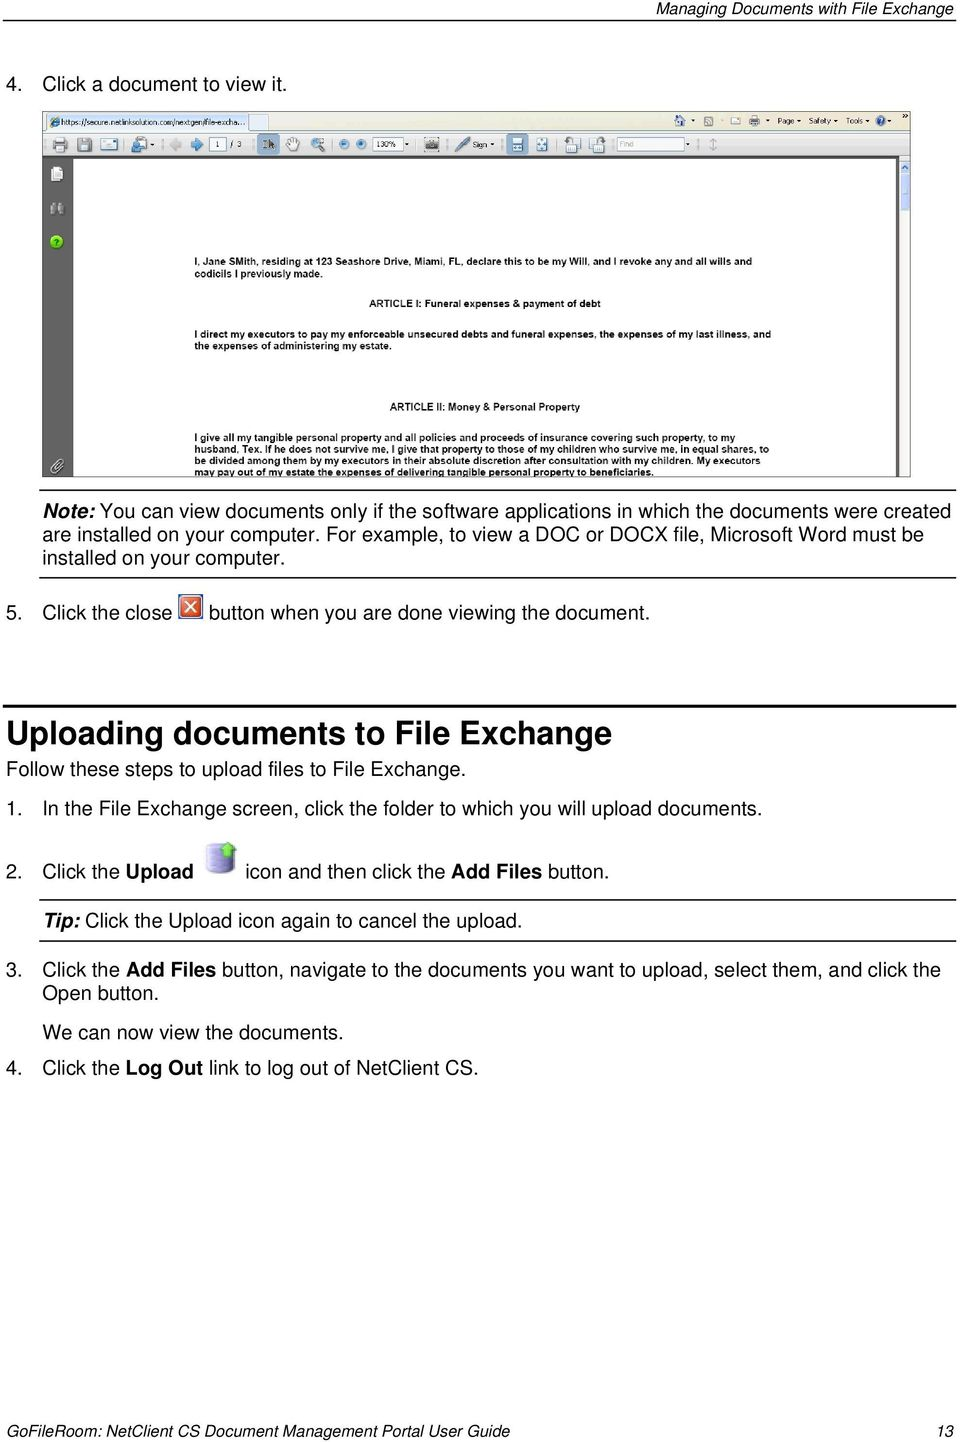 Uploading documents to File Exchange Follow these steps to upload files to File Exchange. 1. In the File Exchange screen, click the folder to which you will upload documents. 2.